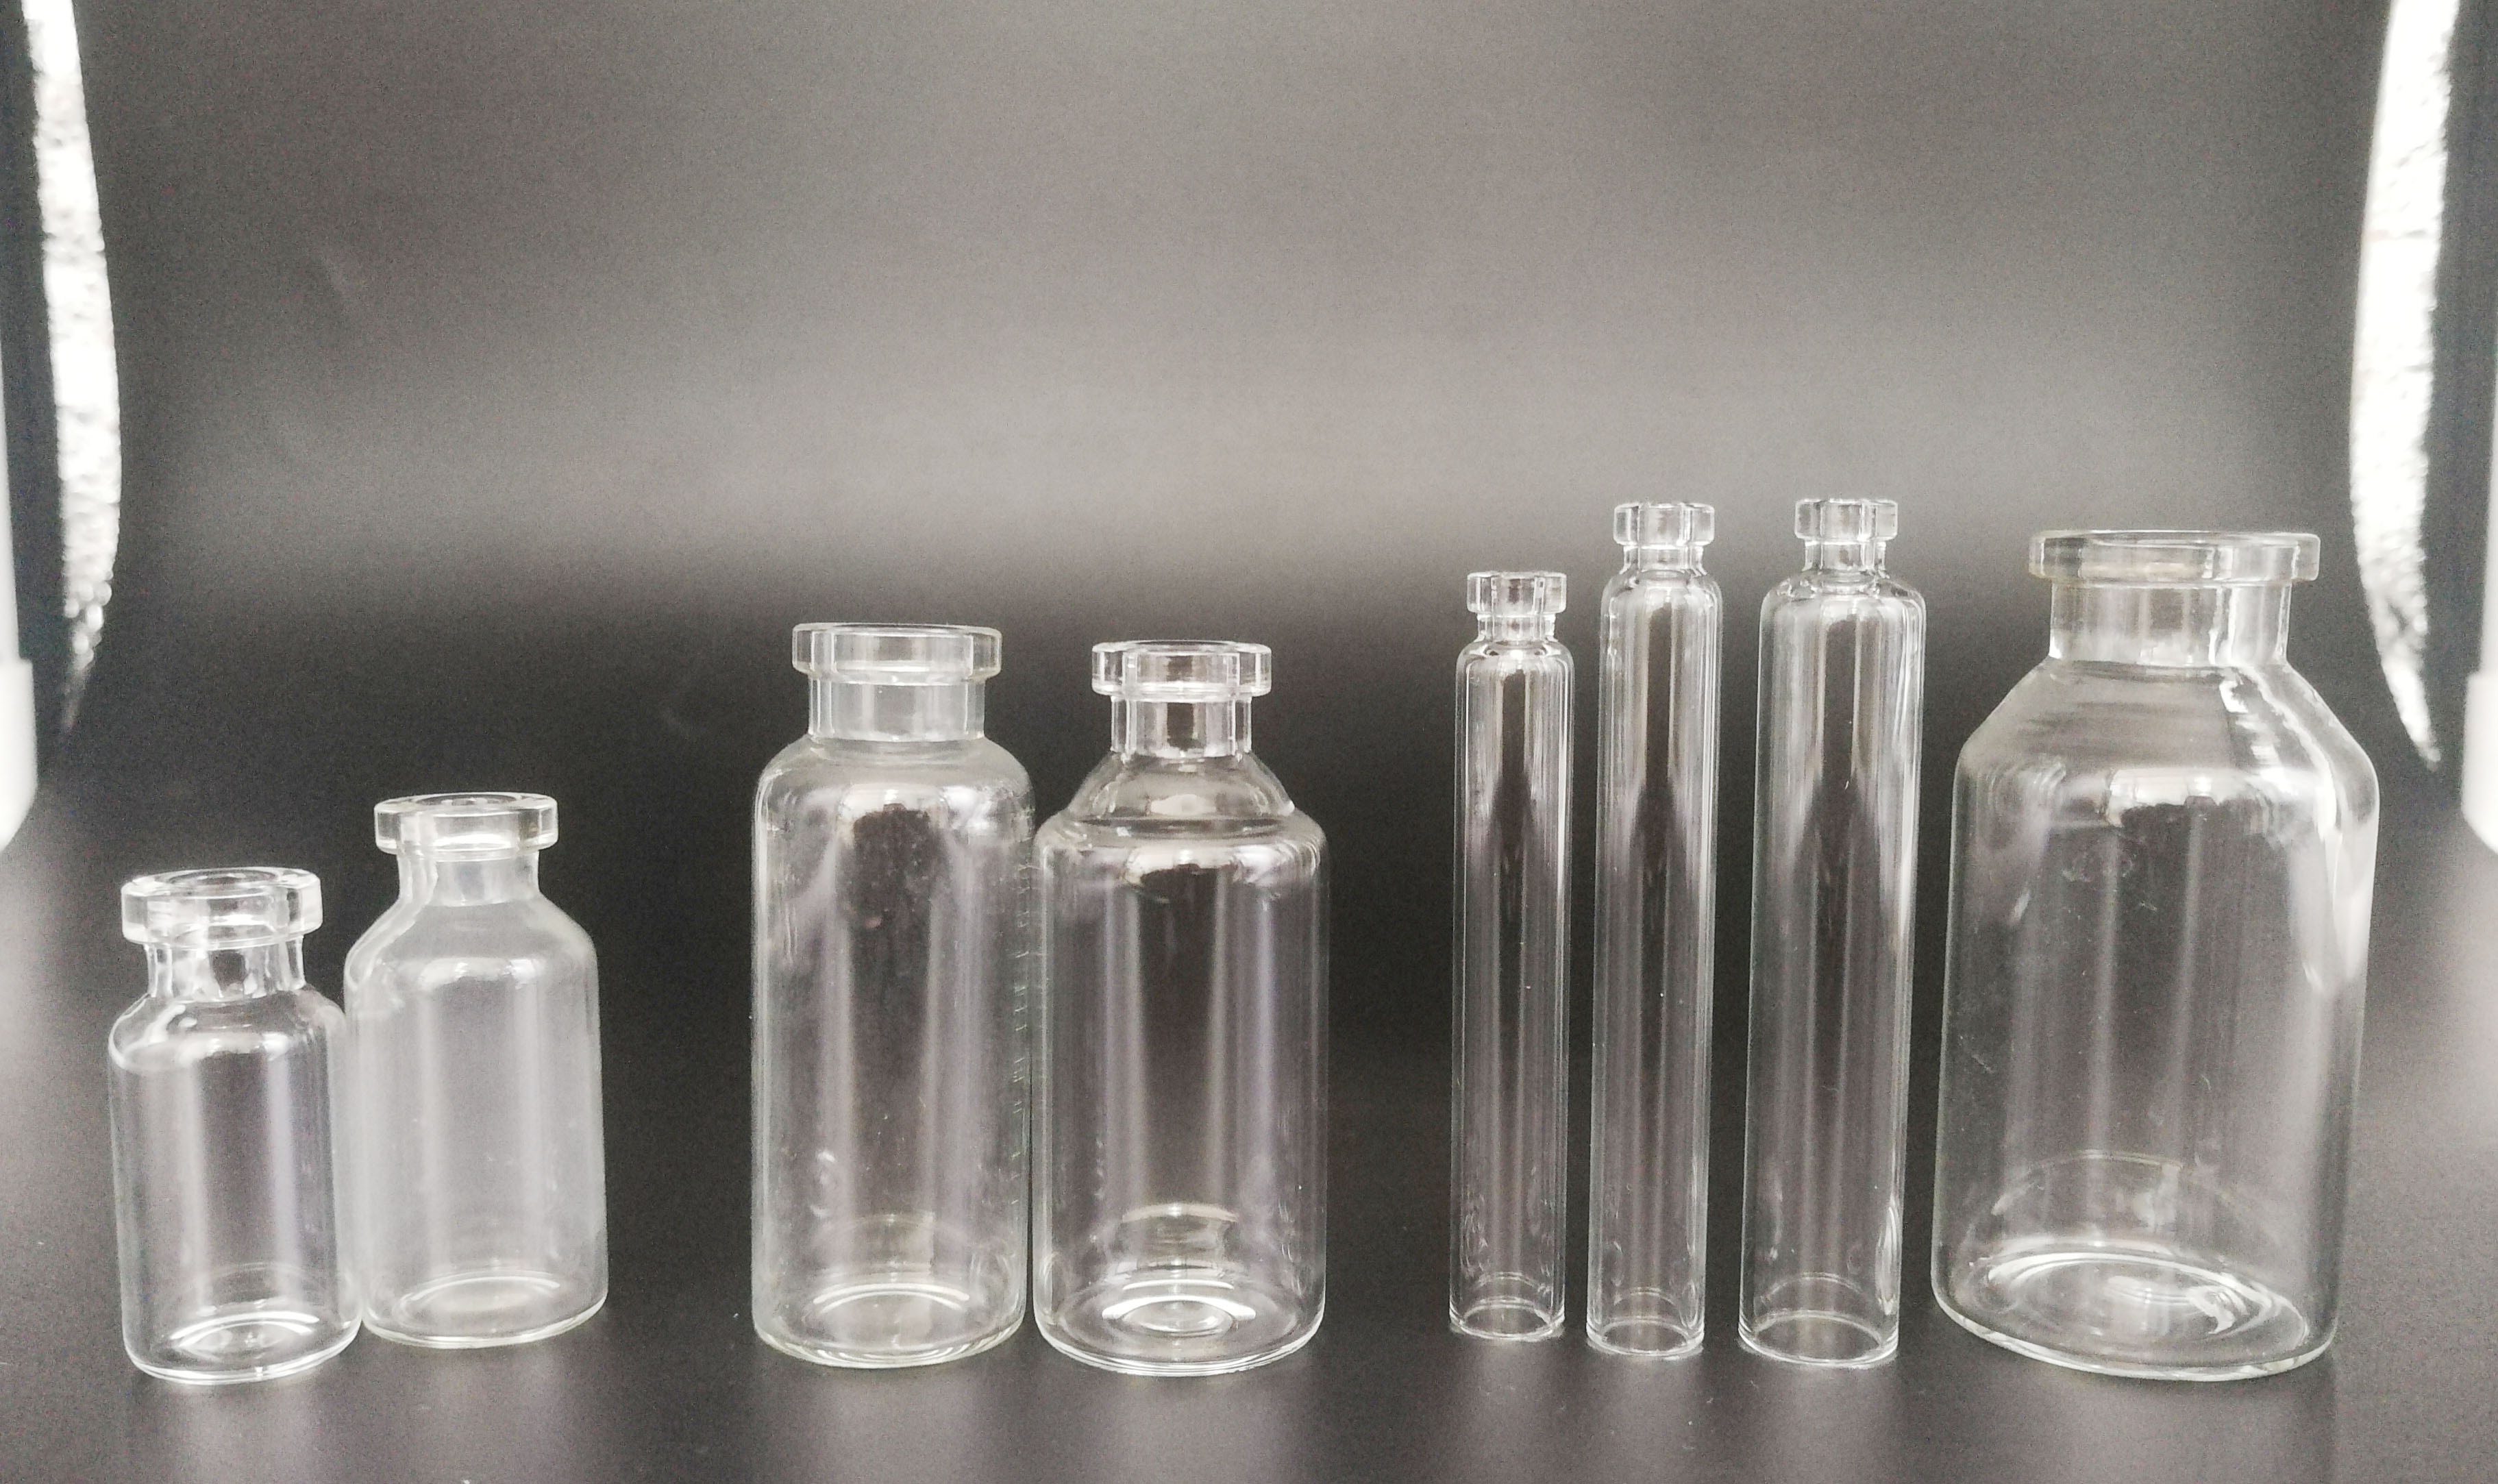 2ml-30ml TUBE GLASS VIAL for phameaceutical medicine packing